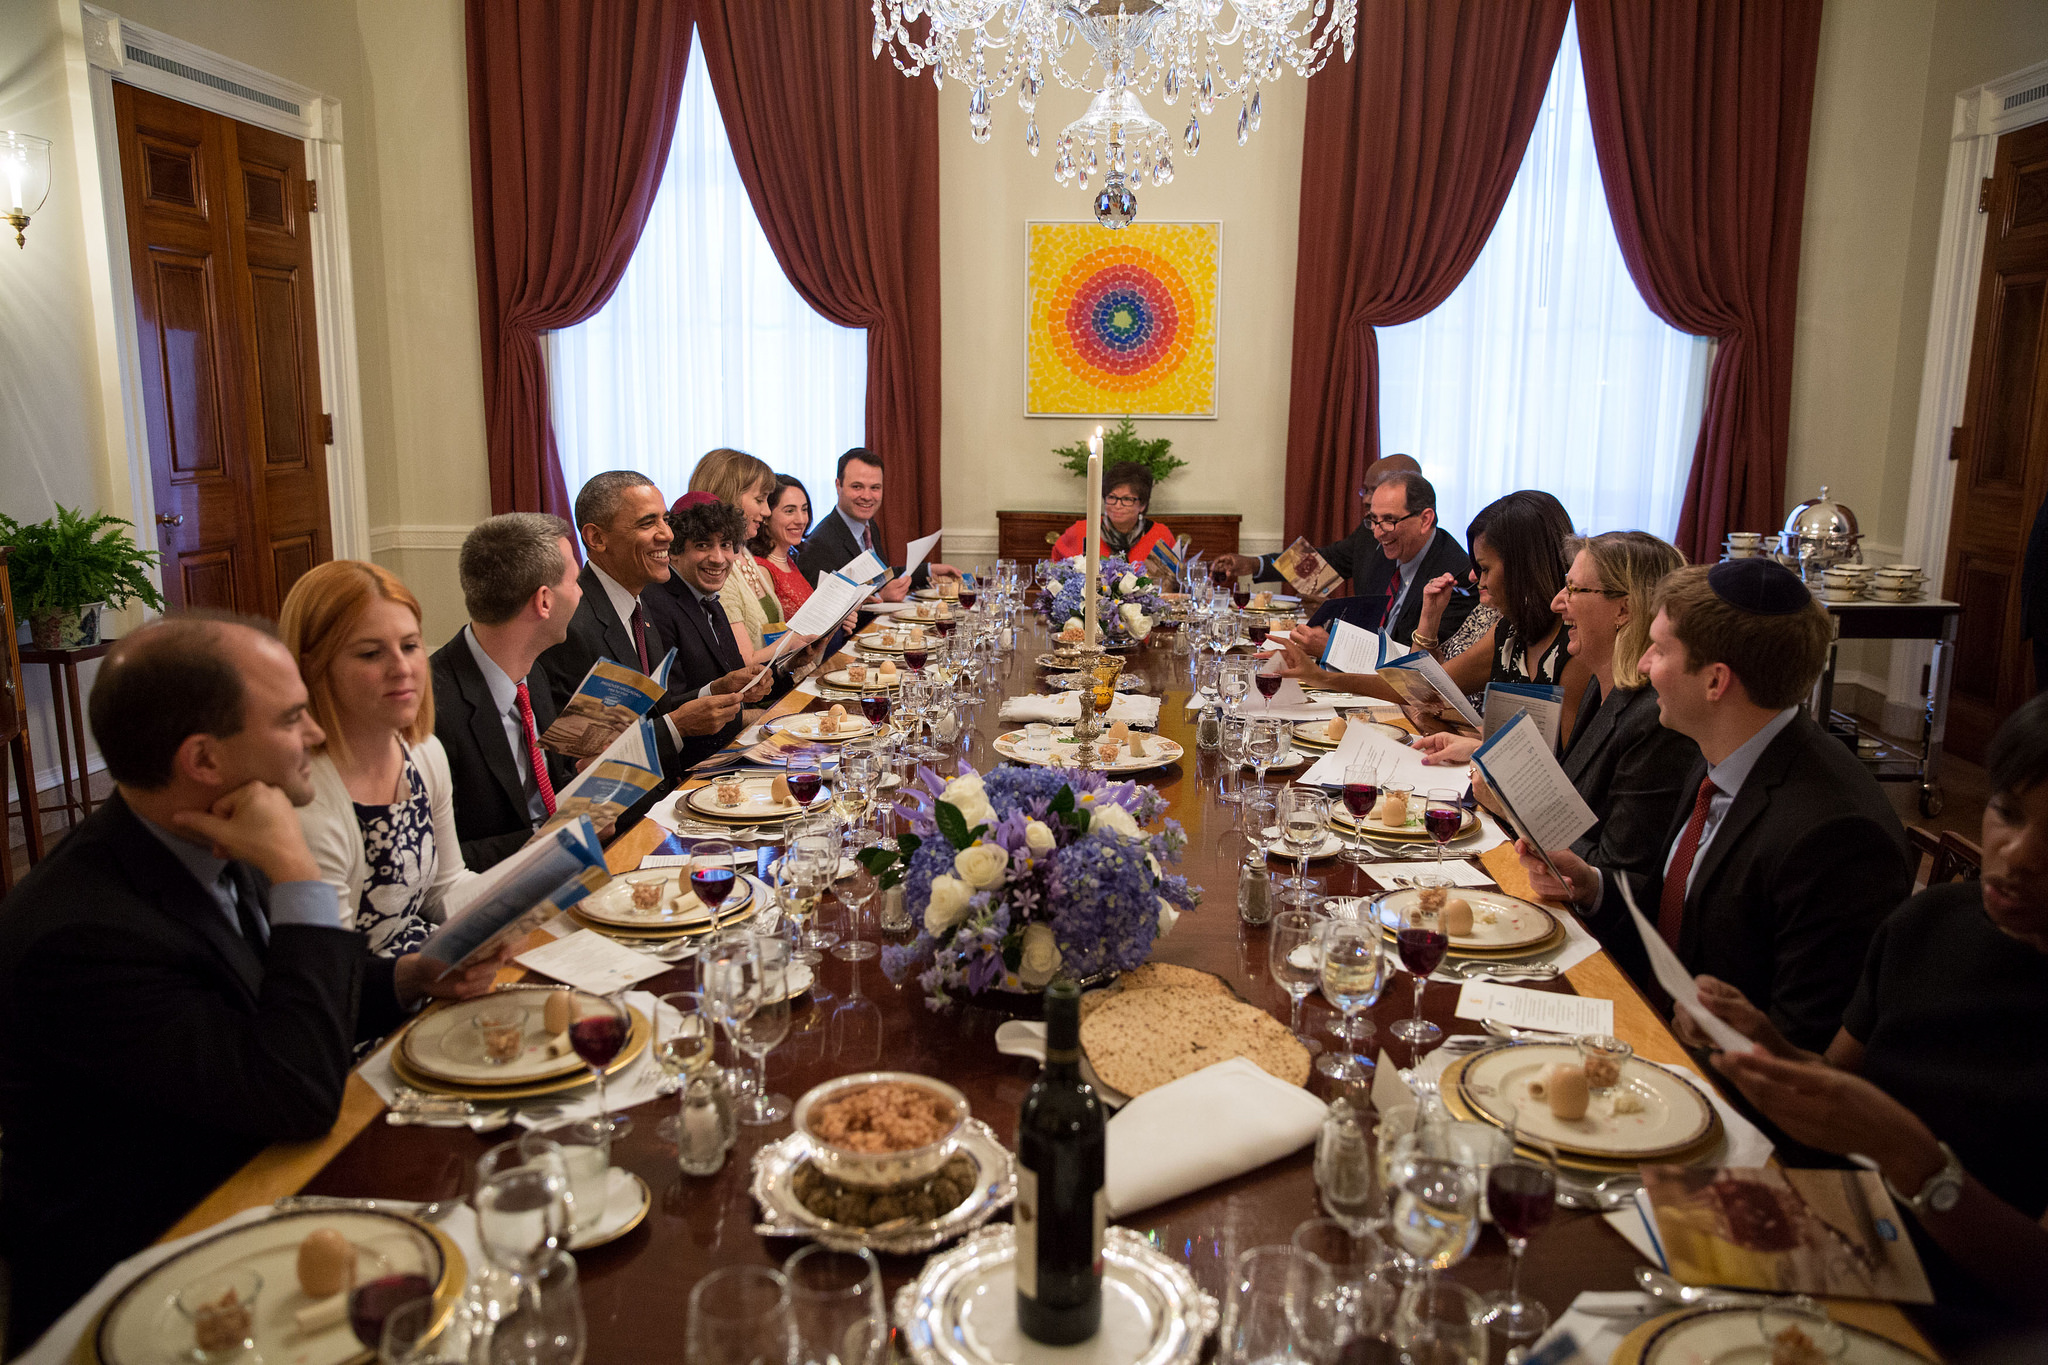 President Barack Obama and First Lady Michelle Obama host a Passover Seder dinner in the Old Family Dining Room